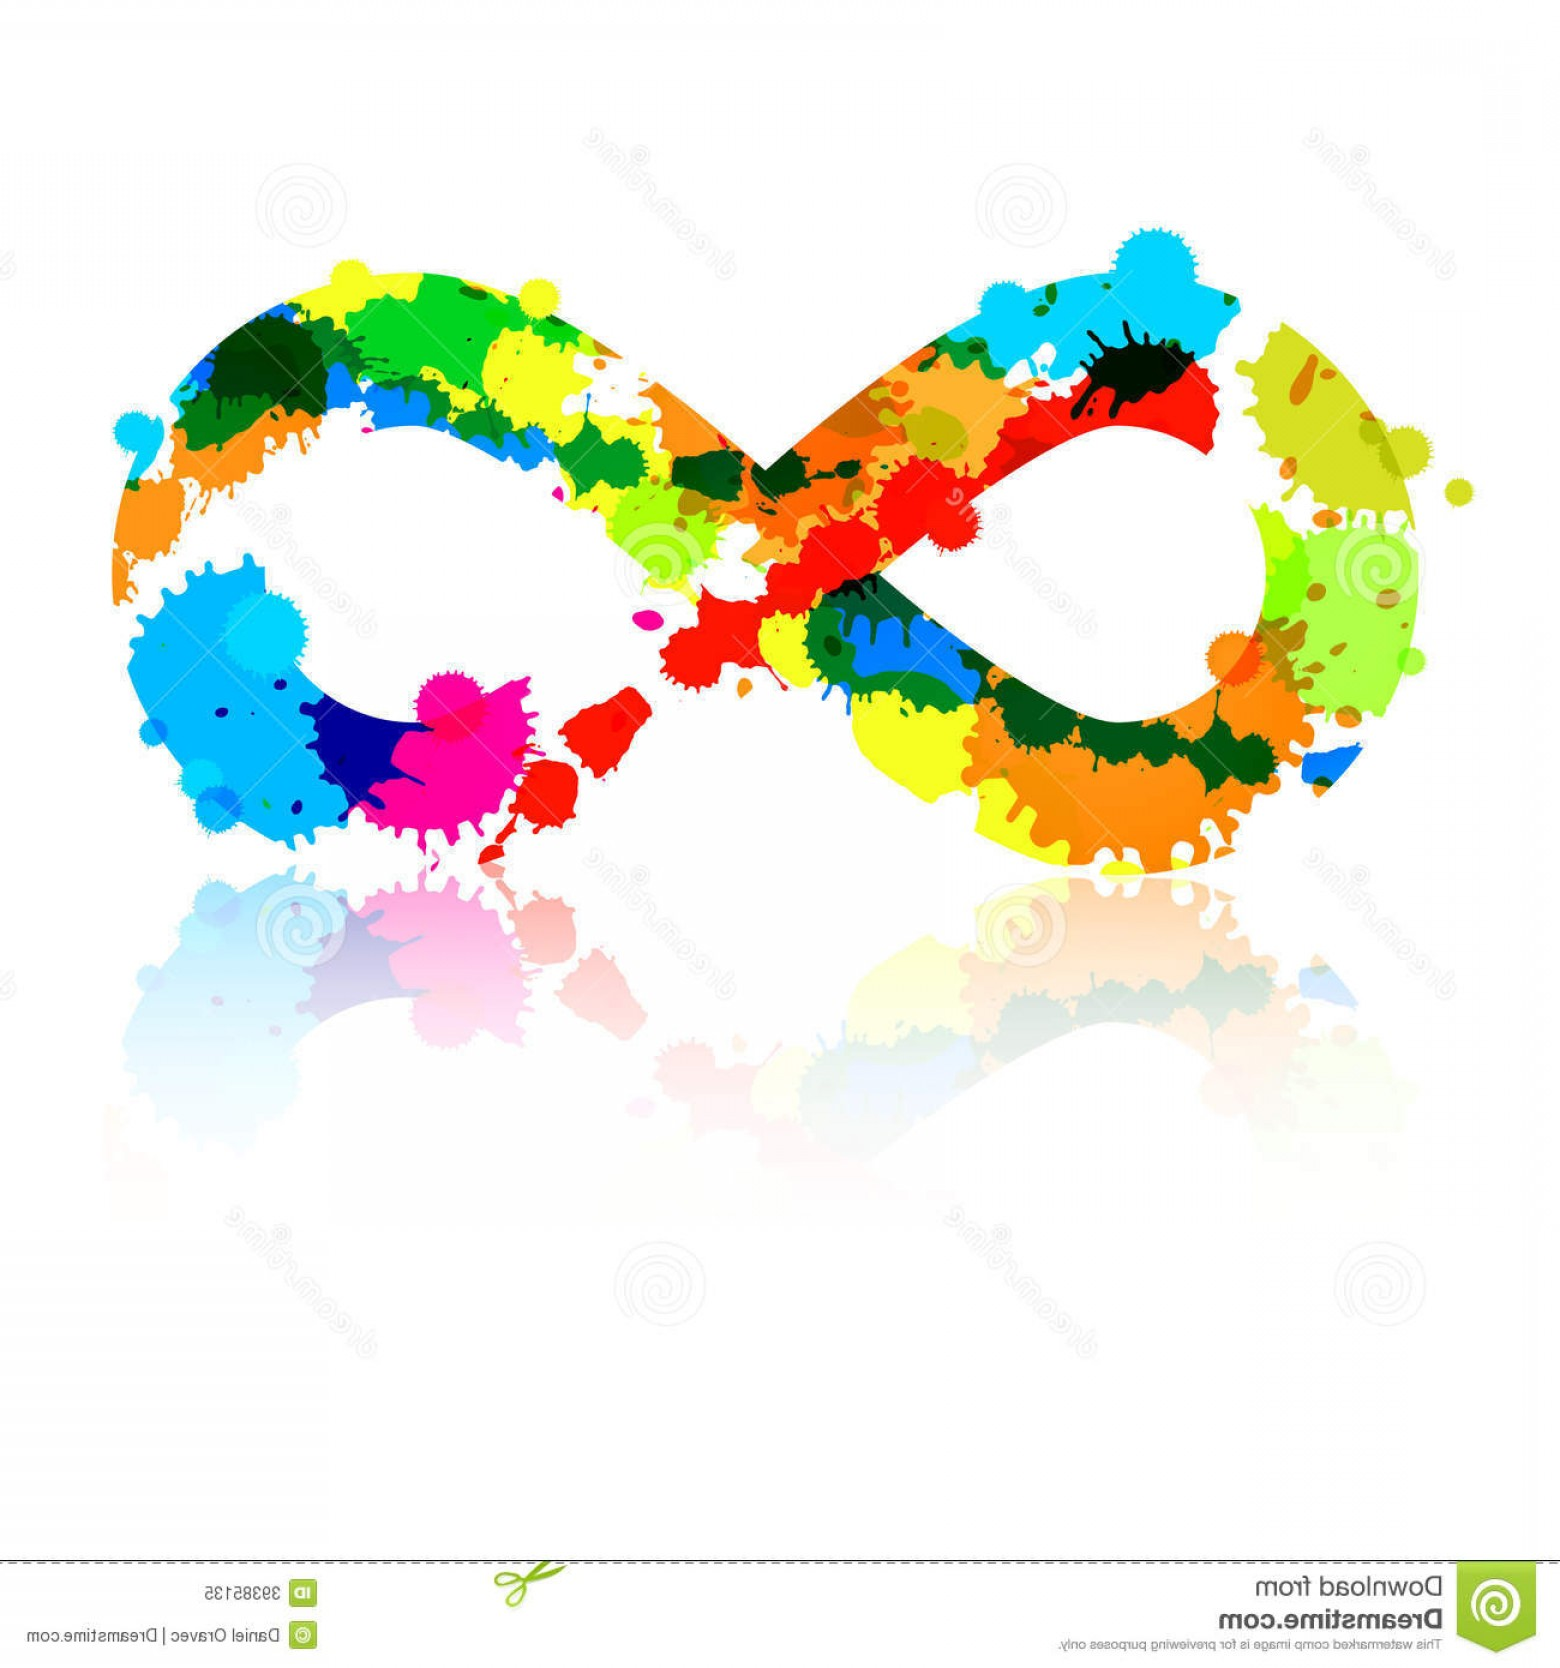 Decorative Infinity Symbol Vector: Royalty Free Stock Photo Abstract Vector Colorful Infinity Symbol Made Splashes Blots Image